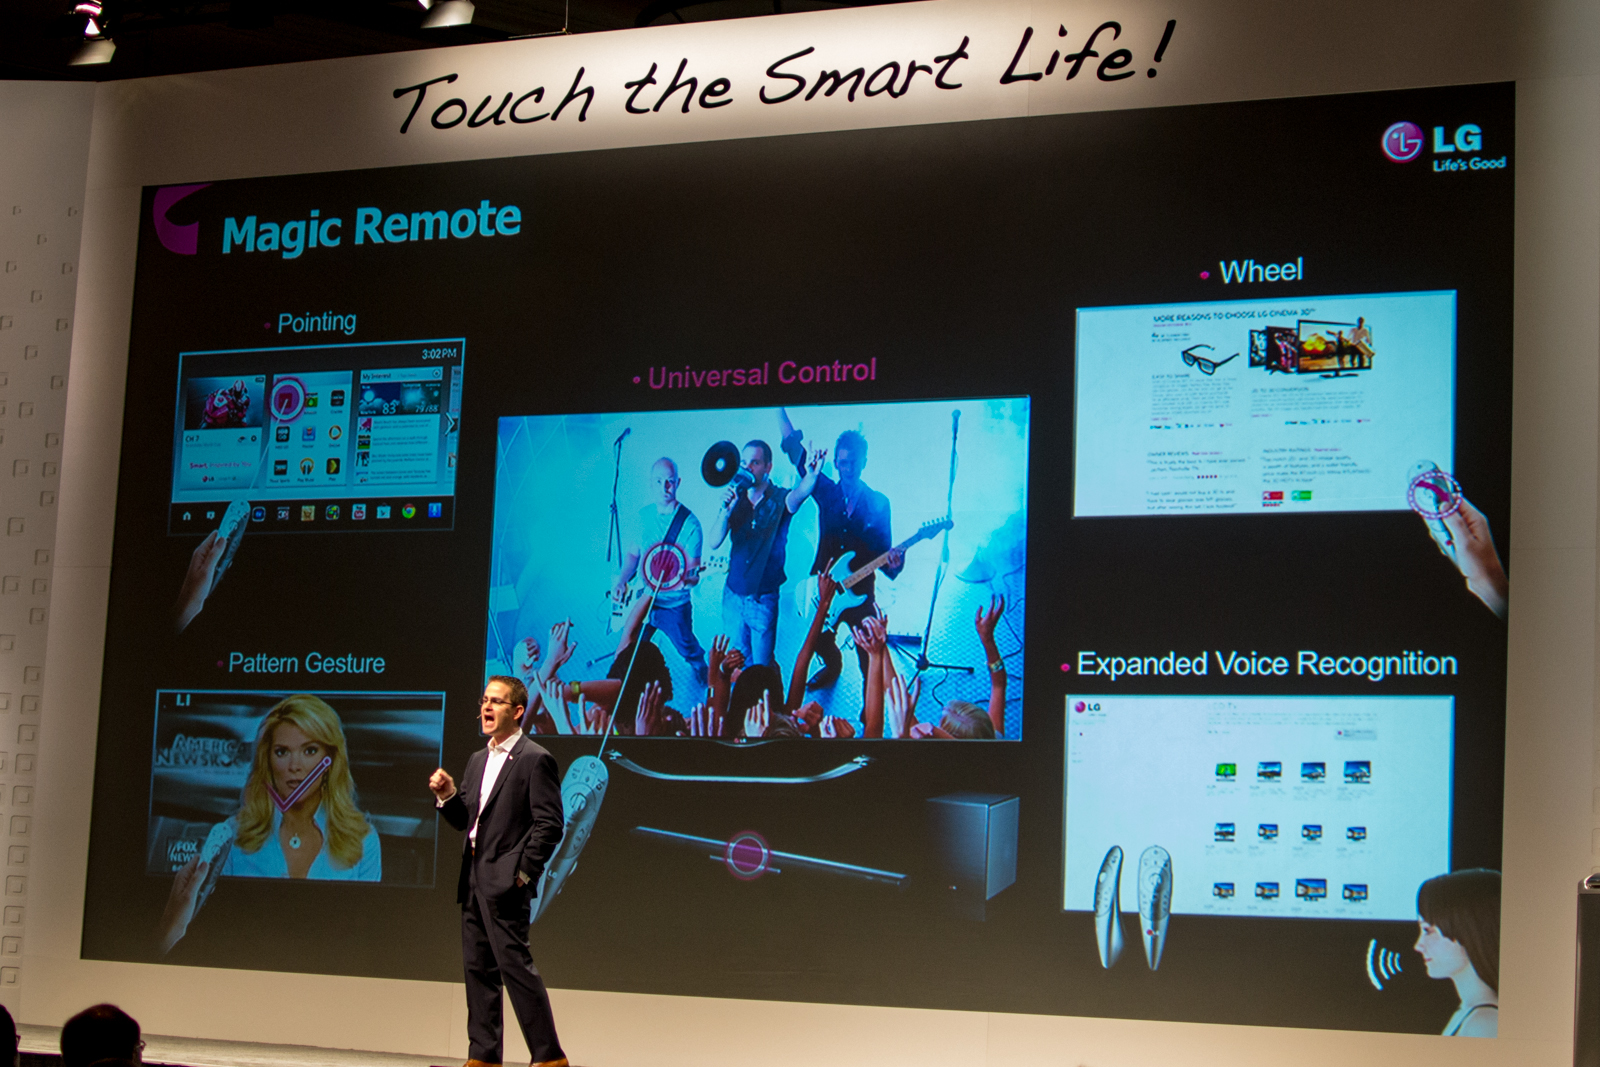 LG bringing UltraHD, OLED and more Google TVs to your living room